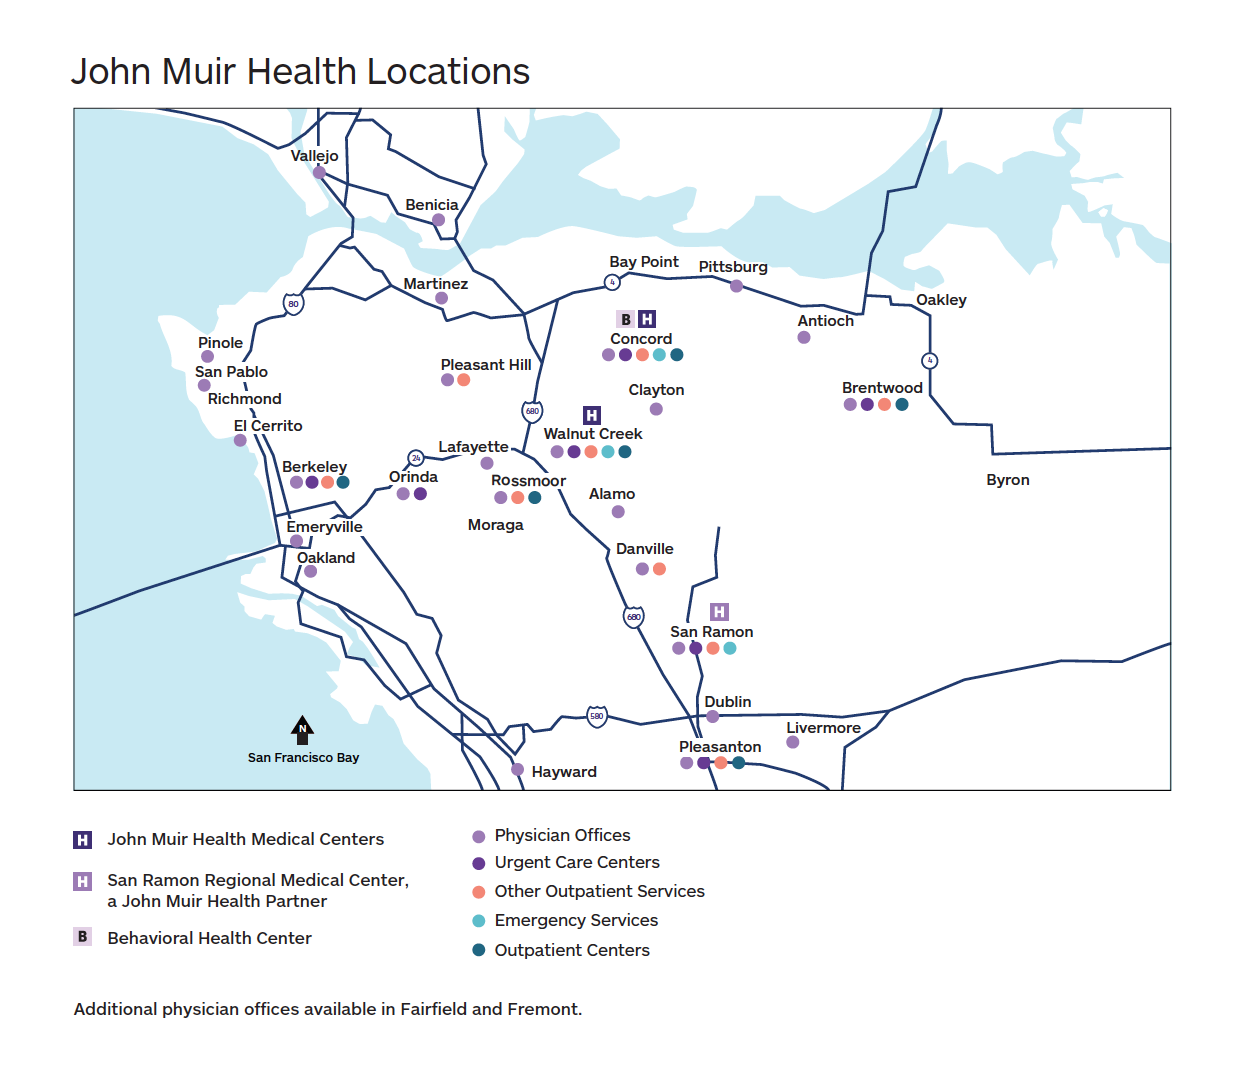 map of John Muir Health locations